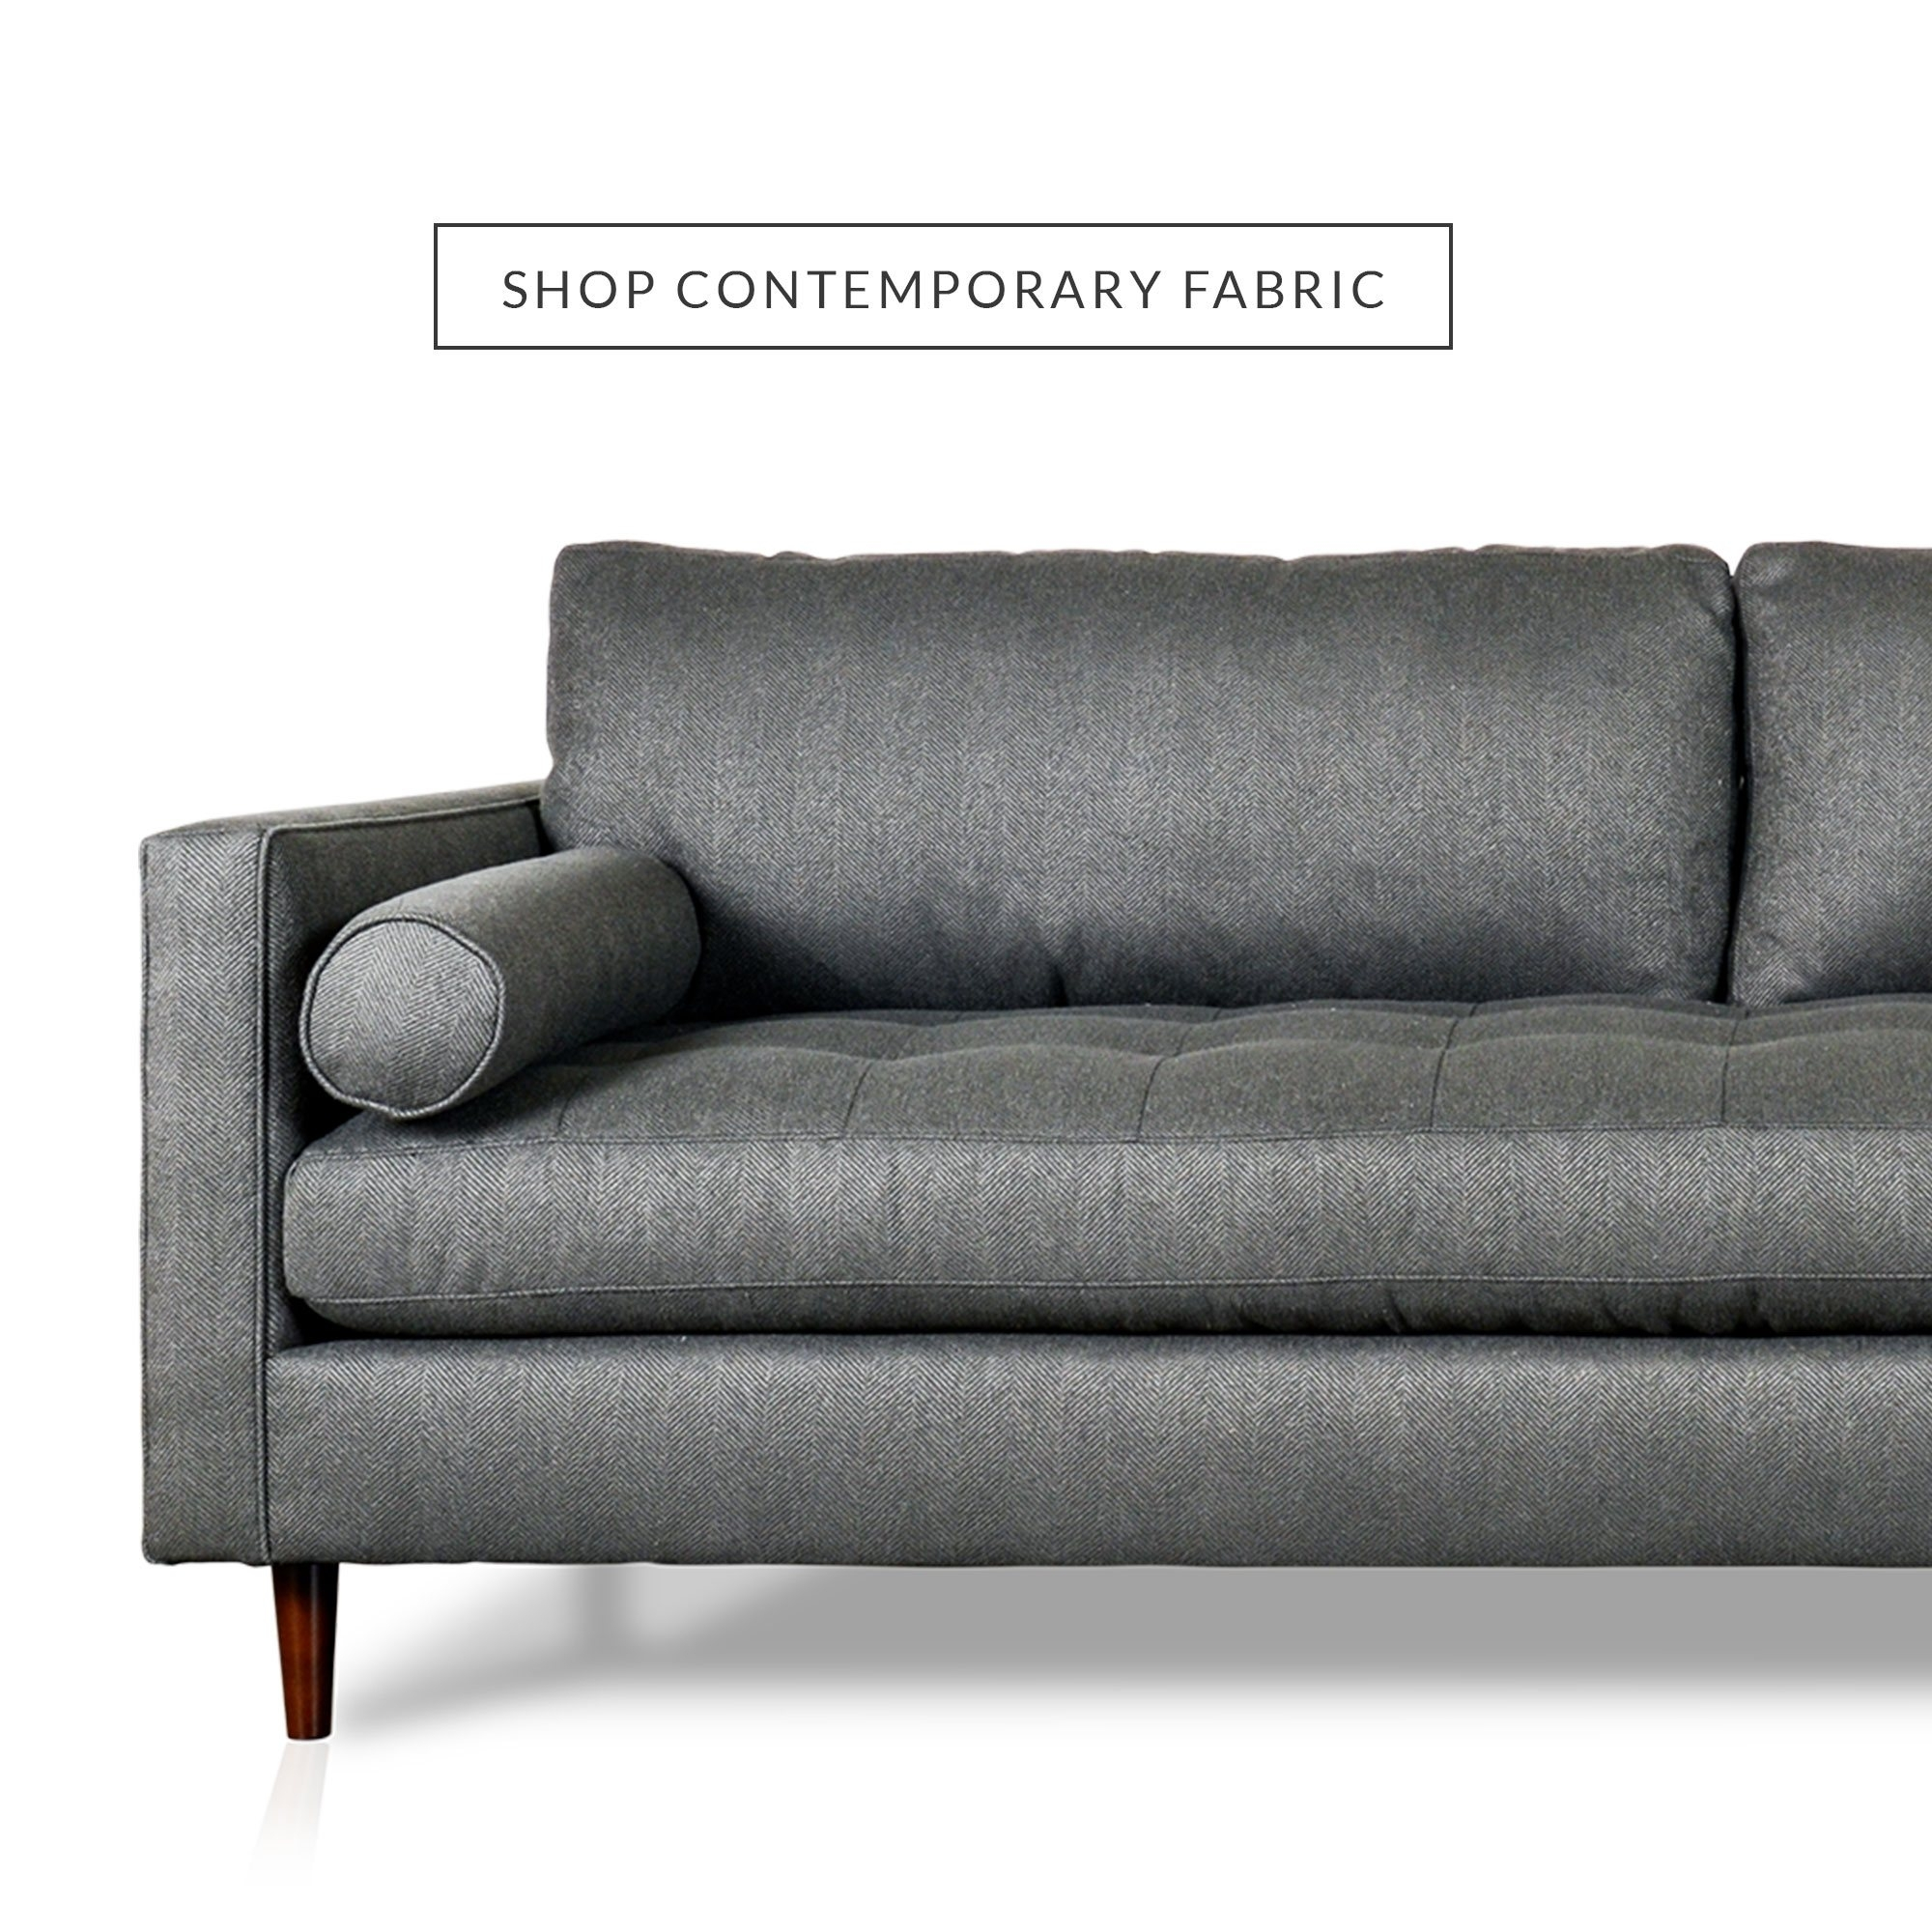 Chesterfield Sofas, Modern Furniture Made In Usa | Cococohome intended for Sectional Sofas at Brampton (Image 3 of 15)